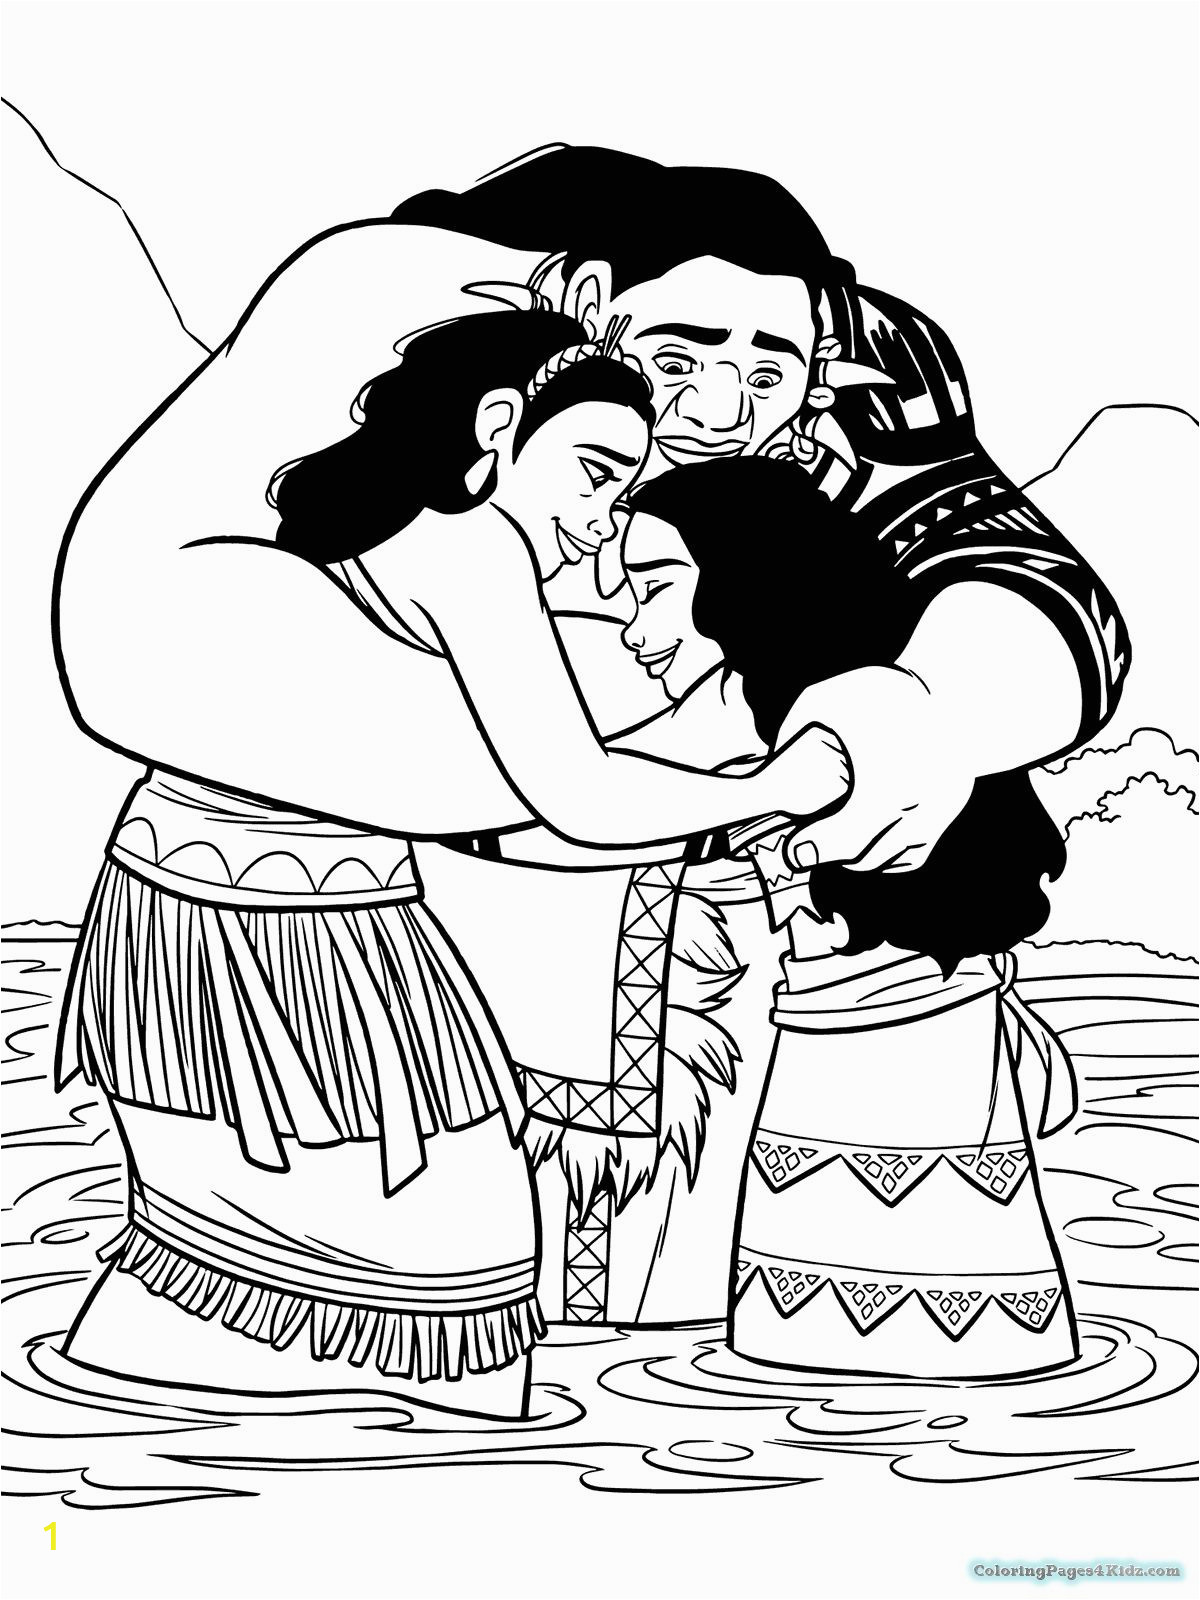 coloring pagesng moana printable sheets for pictures to color print baby of kids book free printables images